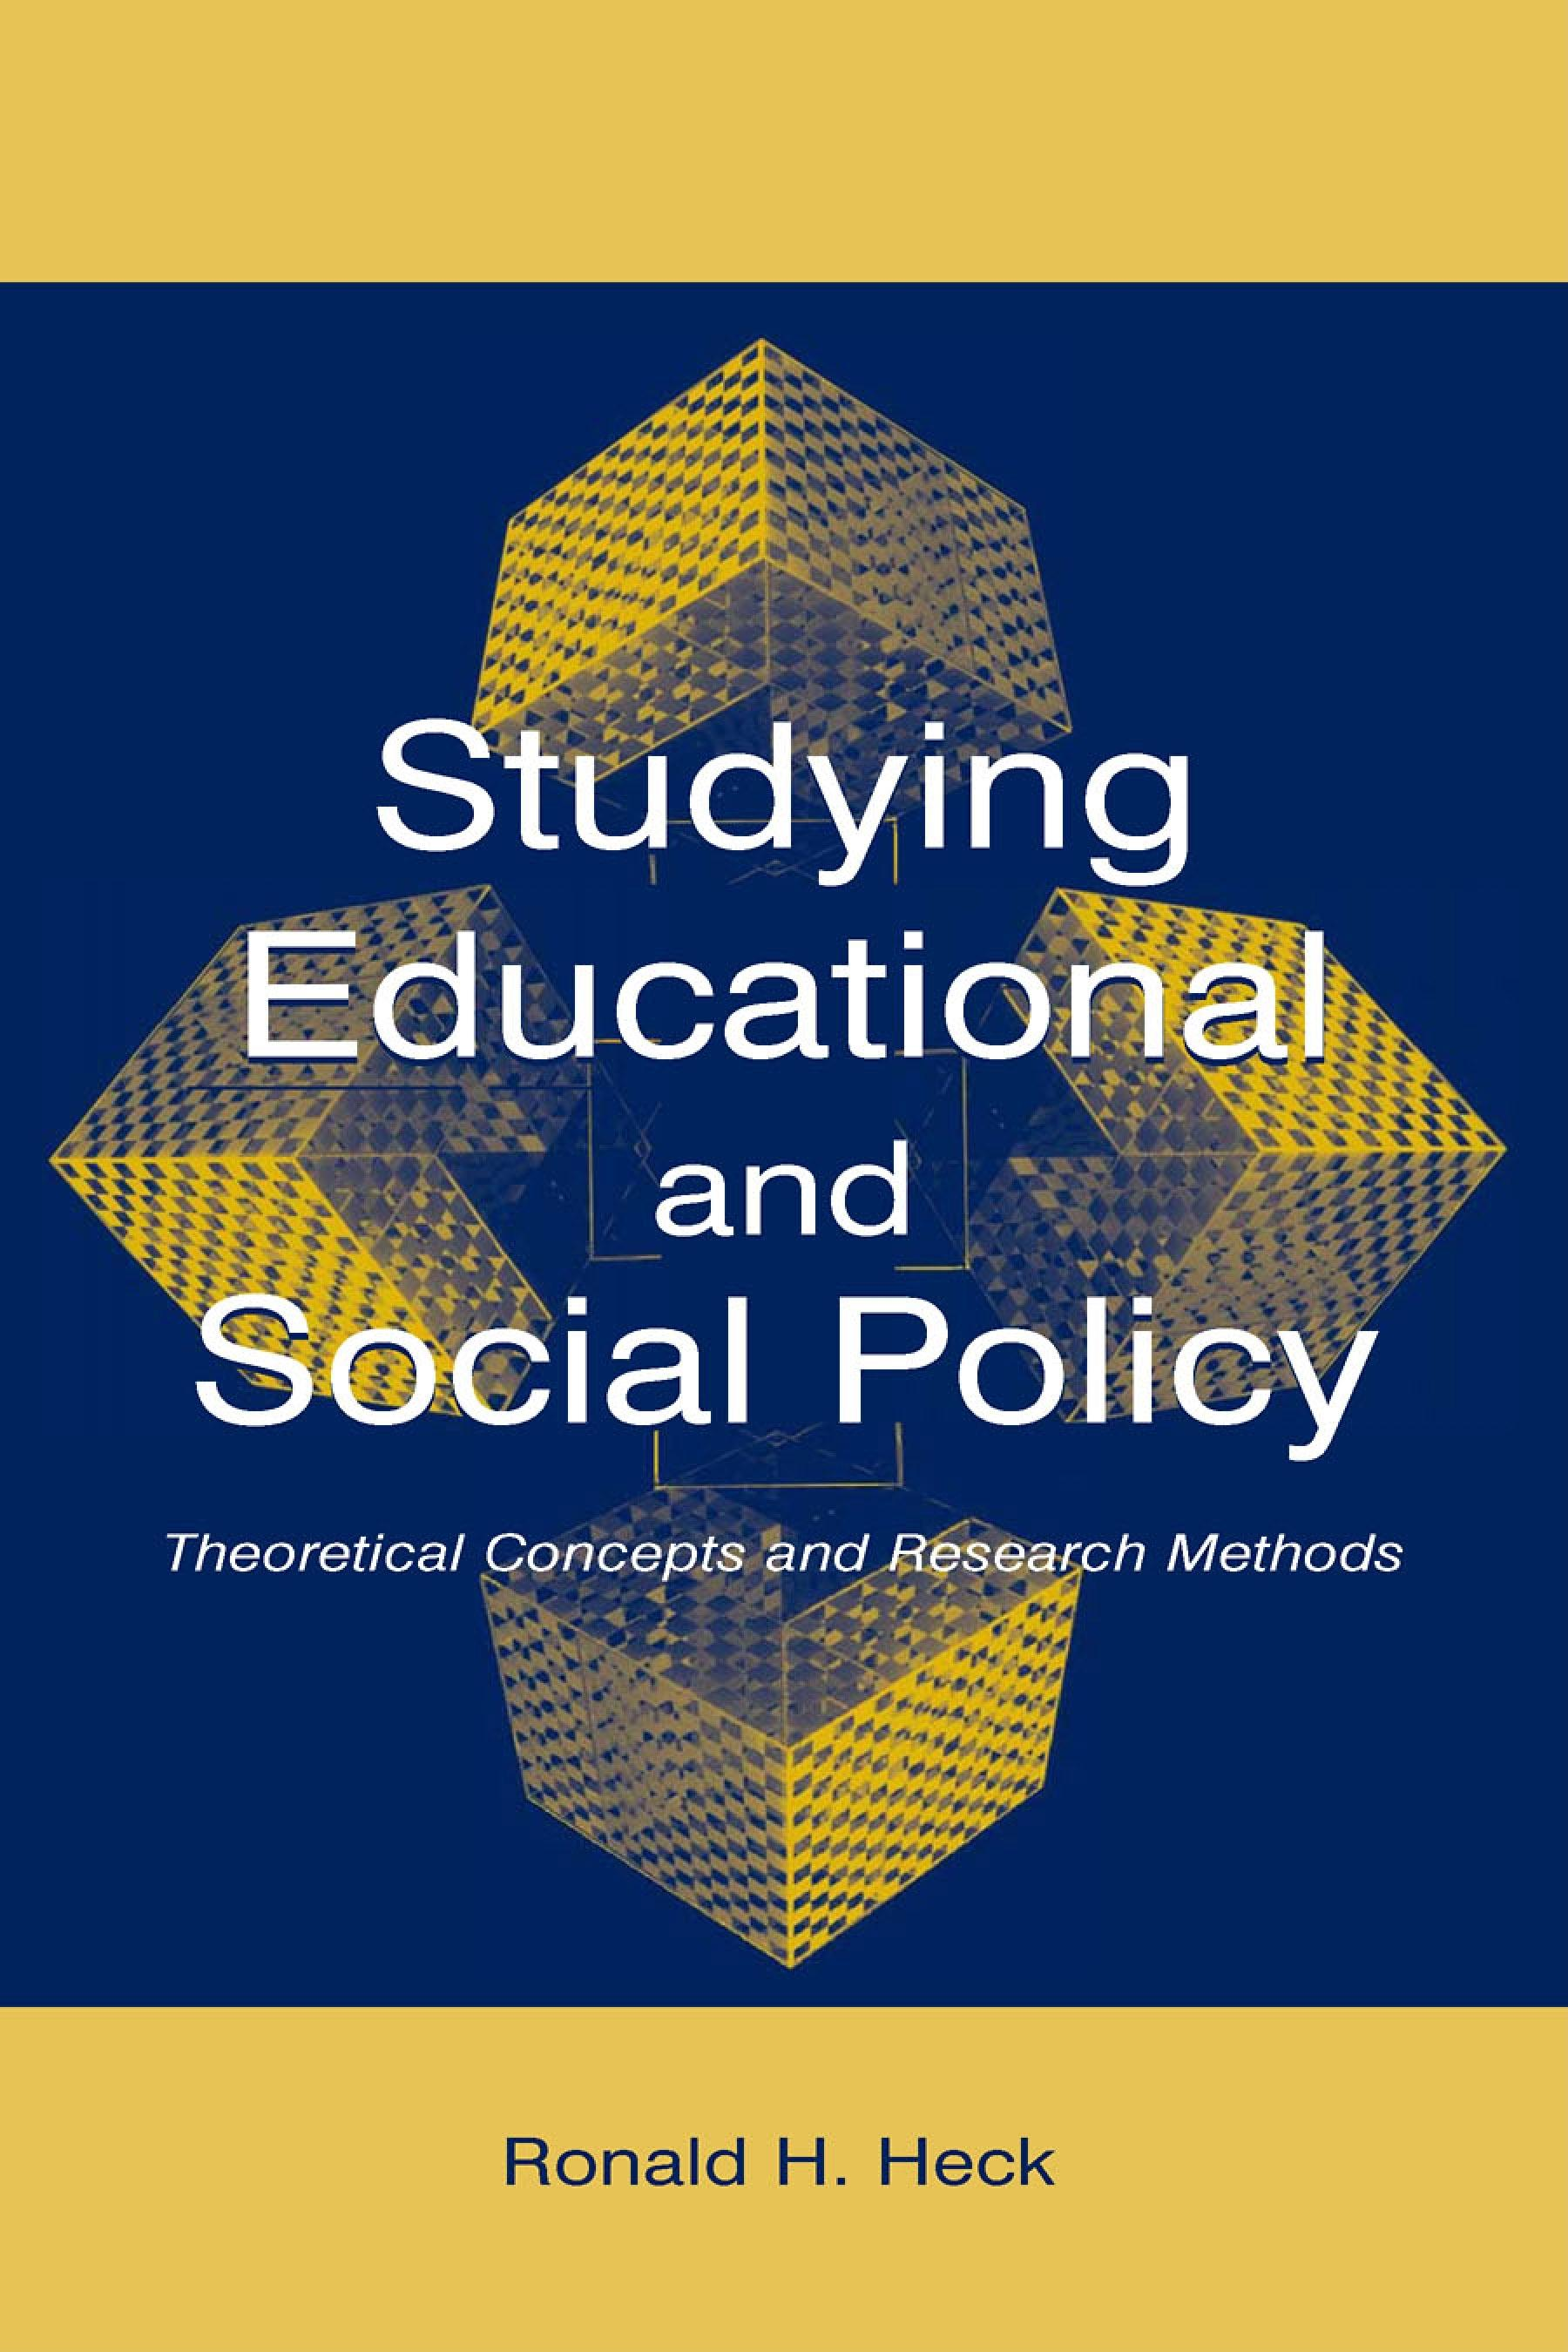 Studying Educational and Social Policy: Theoretical Concepts and Research Methods EB9781410610430